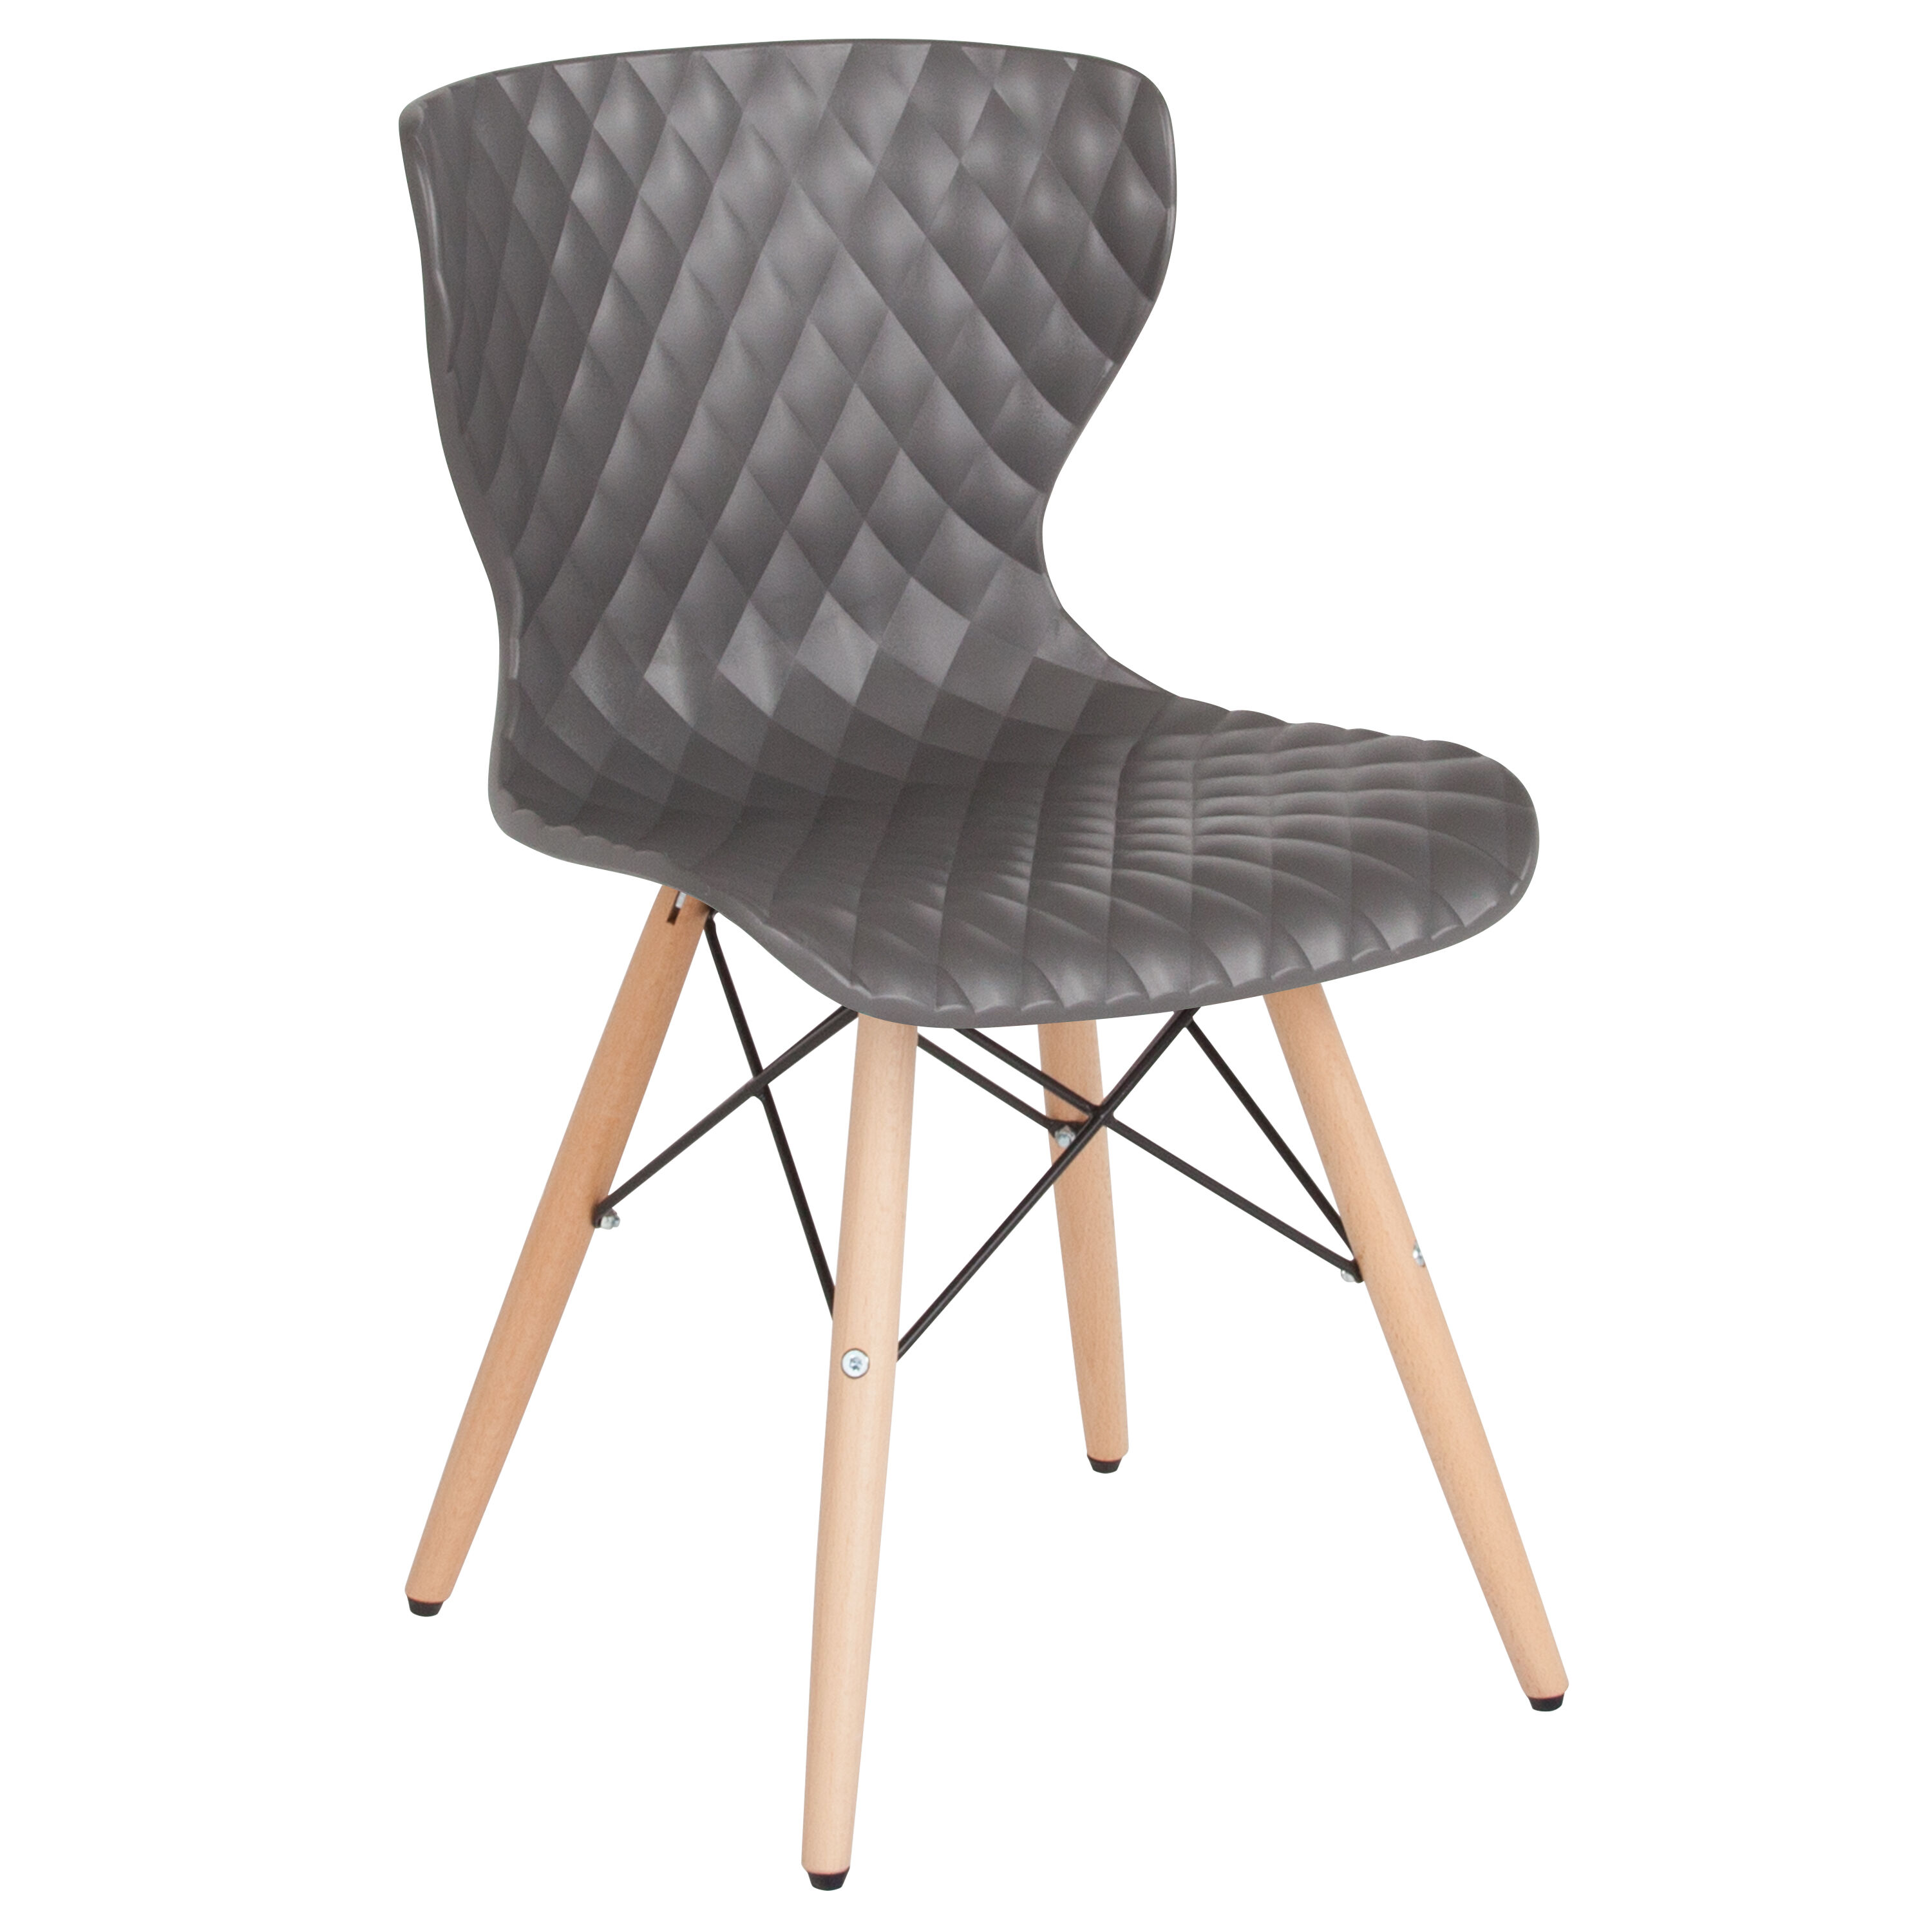 Our Bedford Contemporary Design Gray Plastic Chair With Wooden Legs Is On  Sale Now.